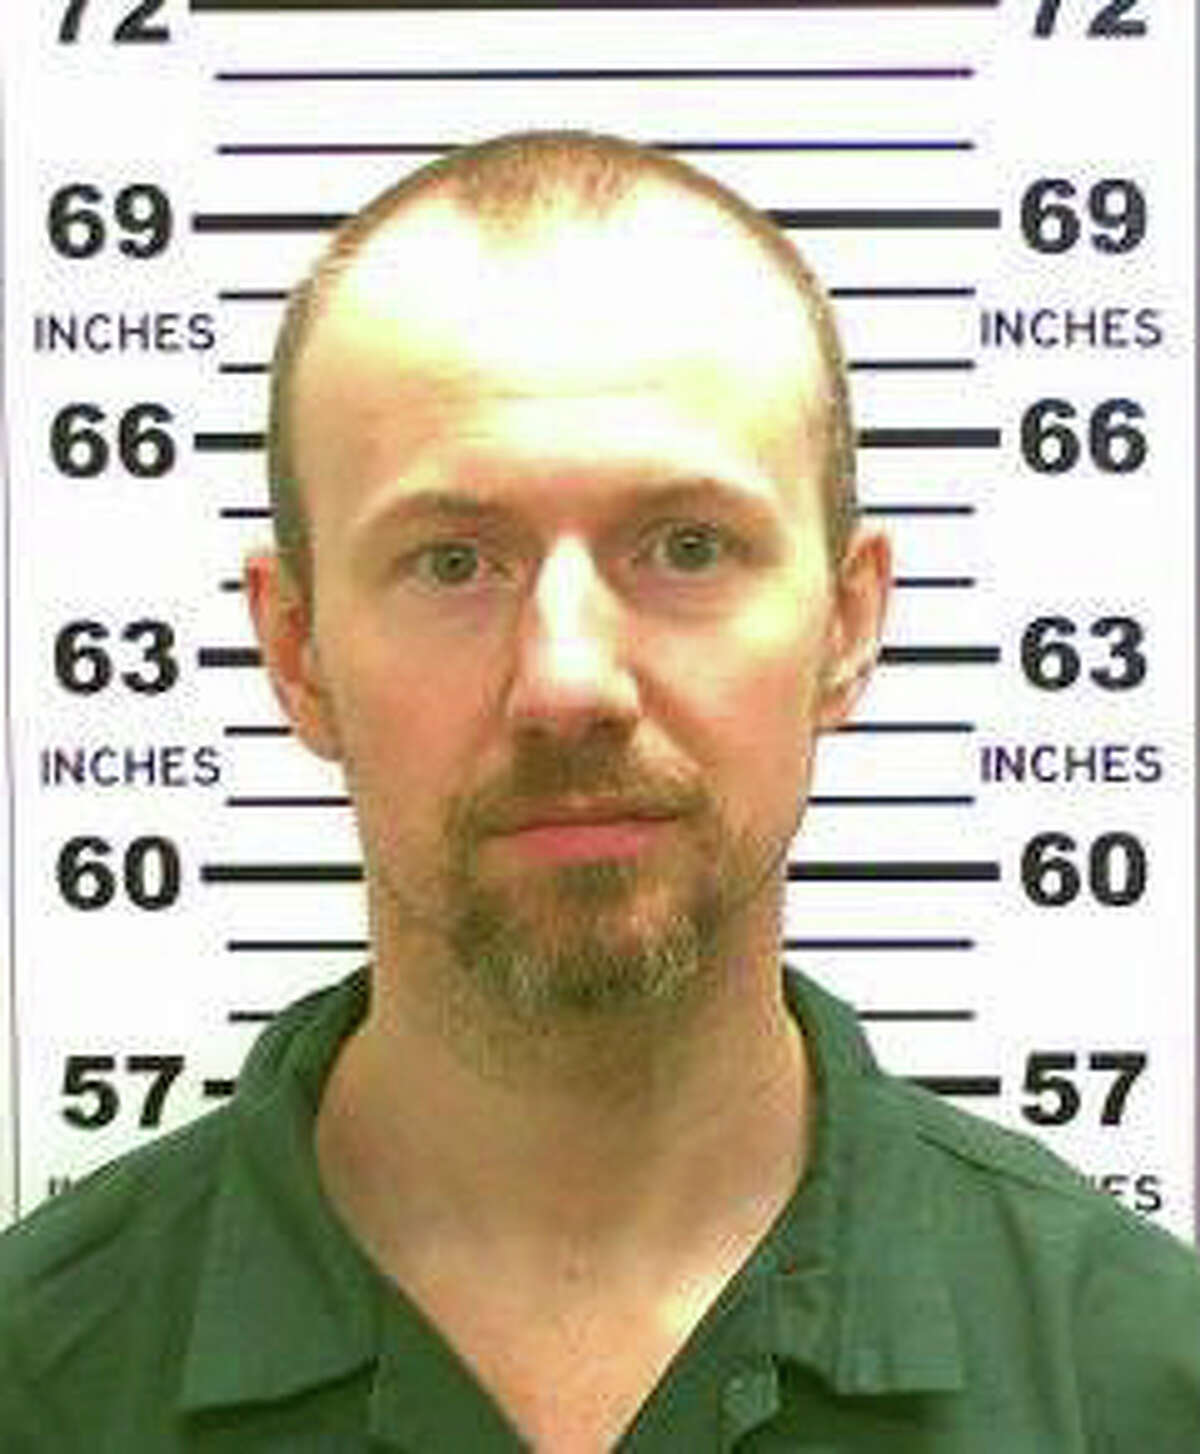 This undated photo released by the New York State Police shows David Sweat, 34, one of the two convicted killers who escaped from the Clinton Correctional Facility in Dannemora, N.Y. The prisoners escaped the state?'s largest prison overnight by tunneling their way out, setting off an extensive manhunt and prompting Gov. Andrew Cuomo to travel to the facility. (New York State Police, via The New York Times) -- FOR EDITORIAL USE ONLY. -- ORG XMIT: XNYT82